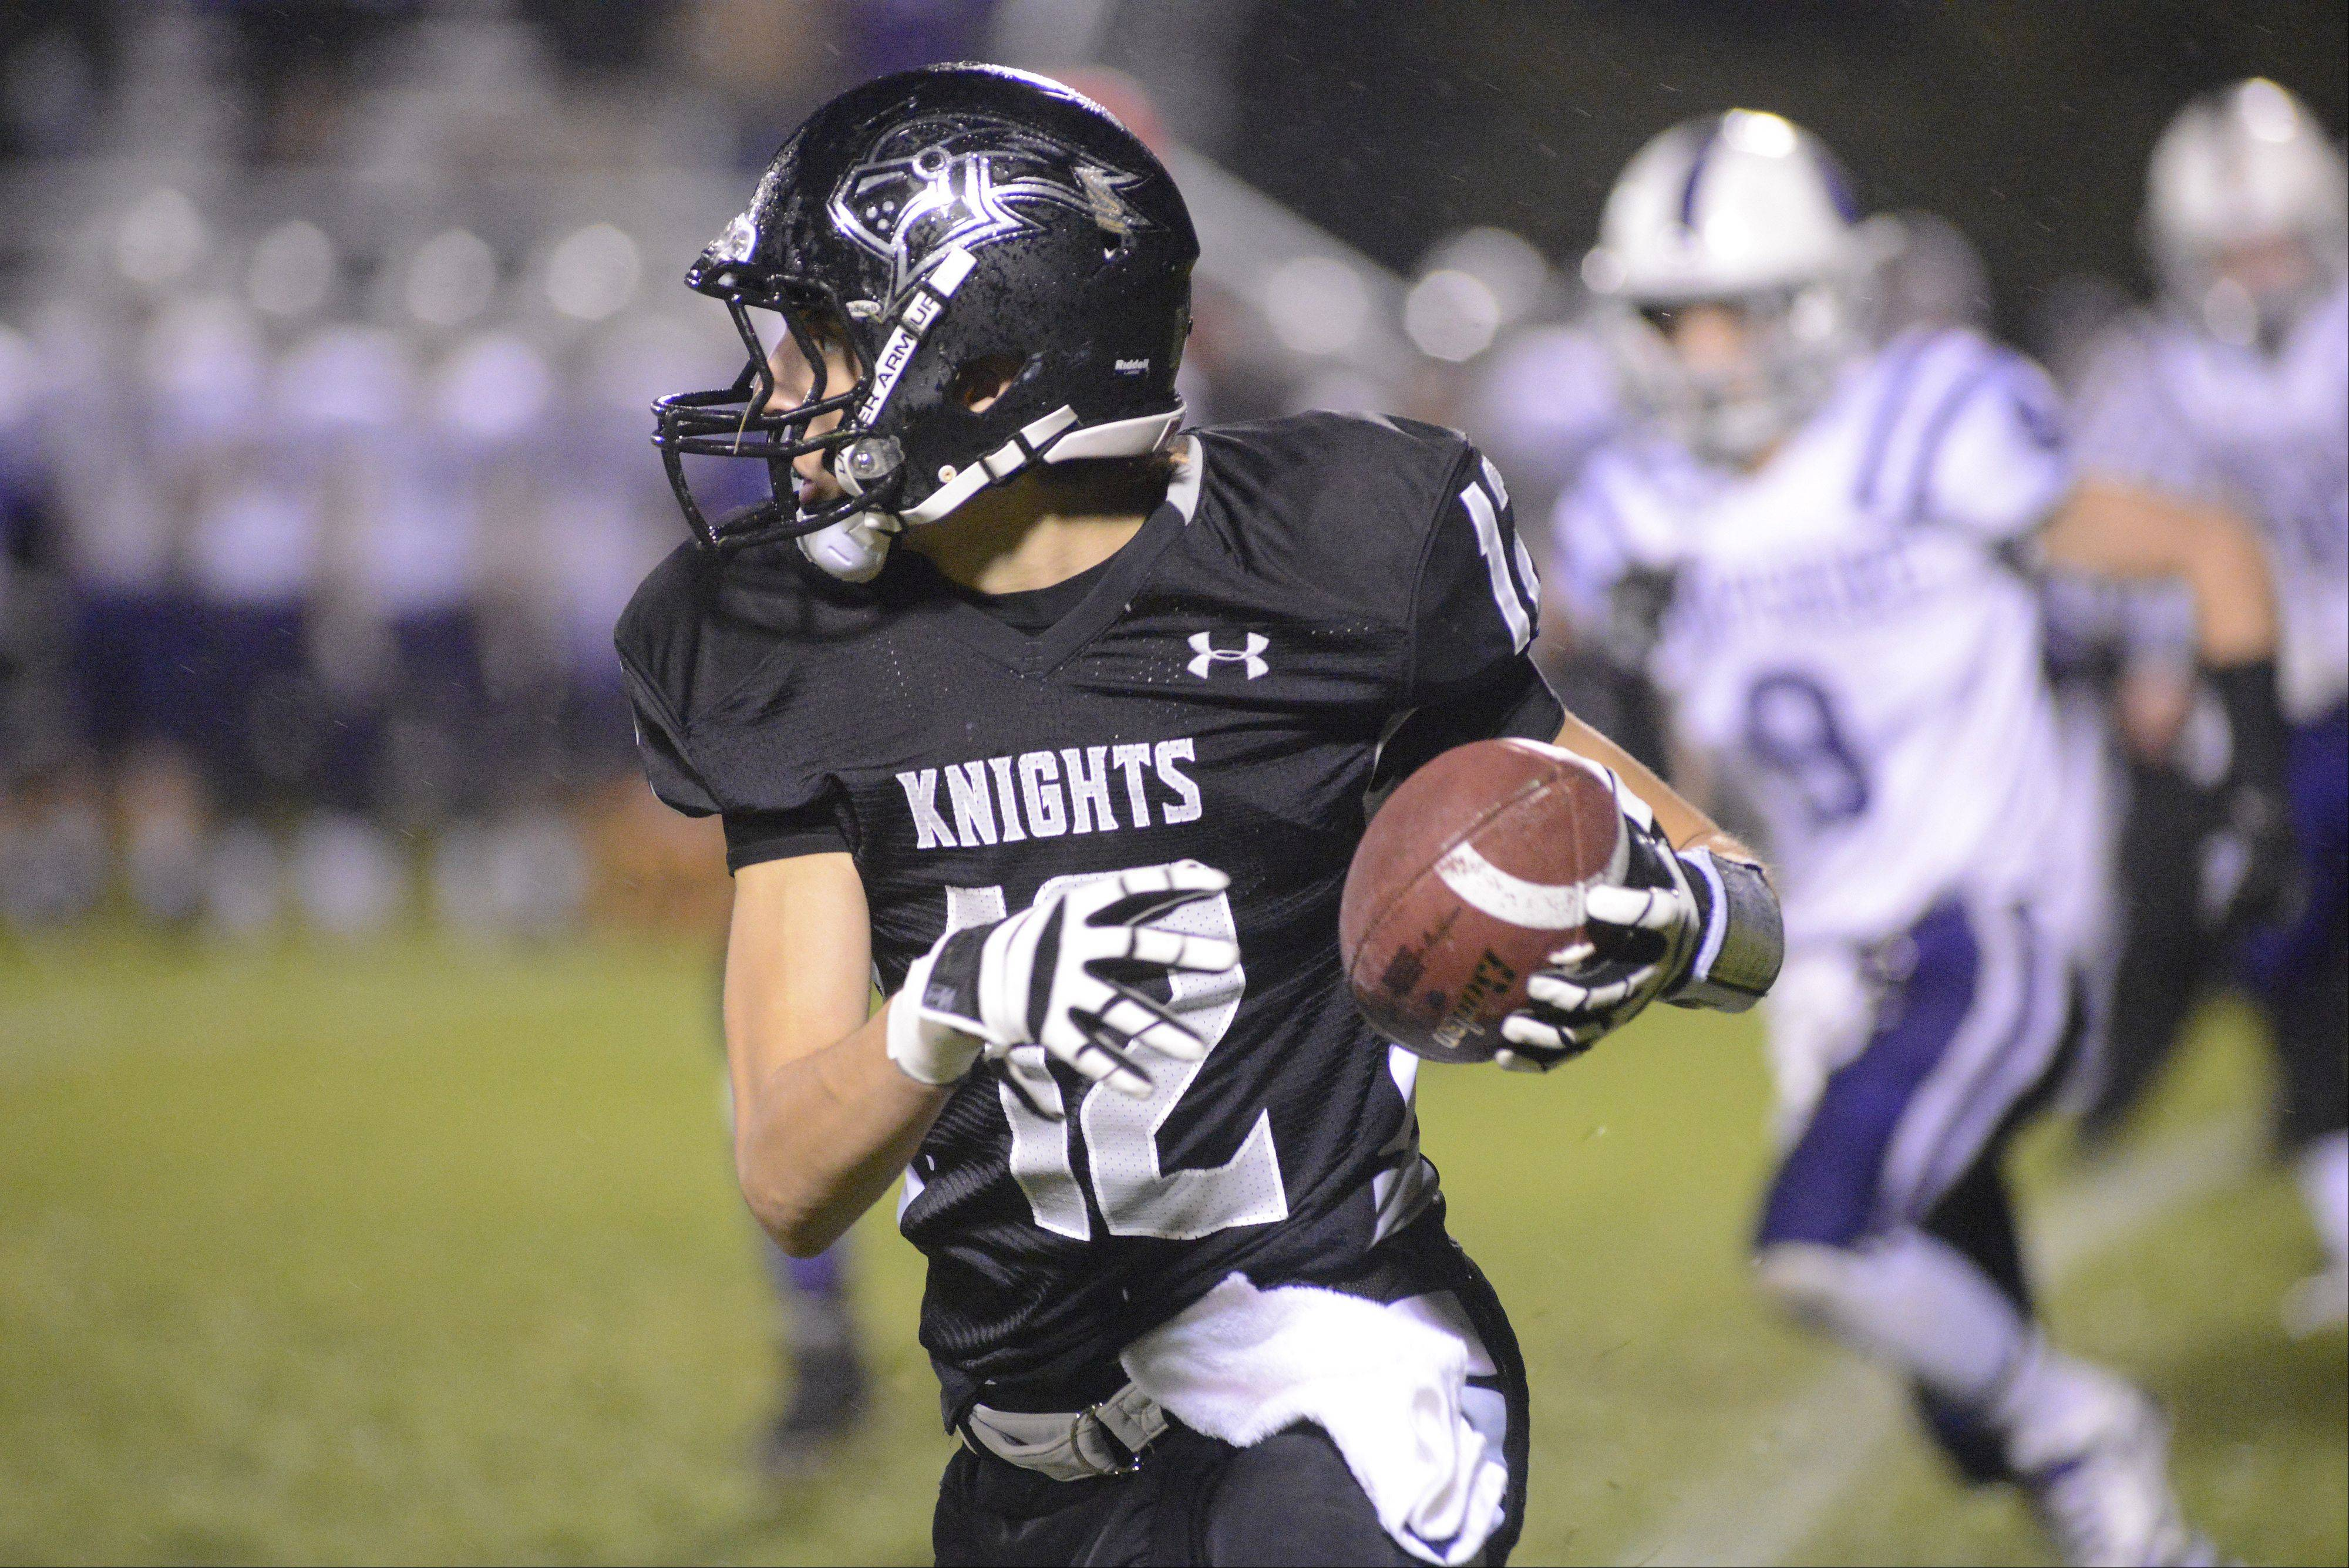 Kaneland's John Pruett makes his way down the field in the first quarter.